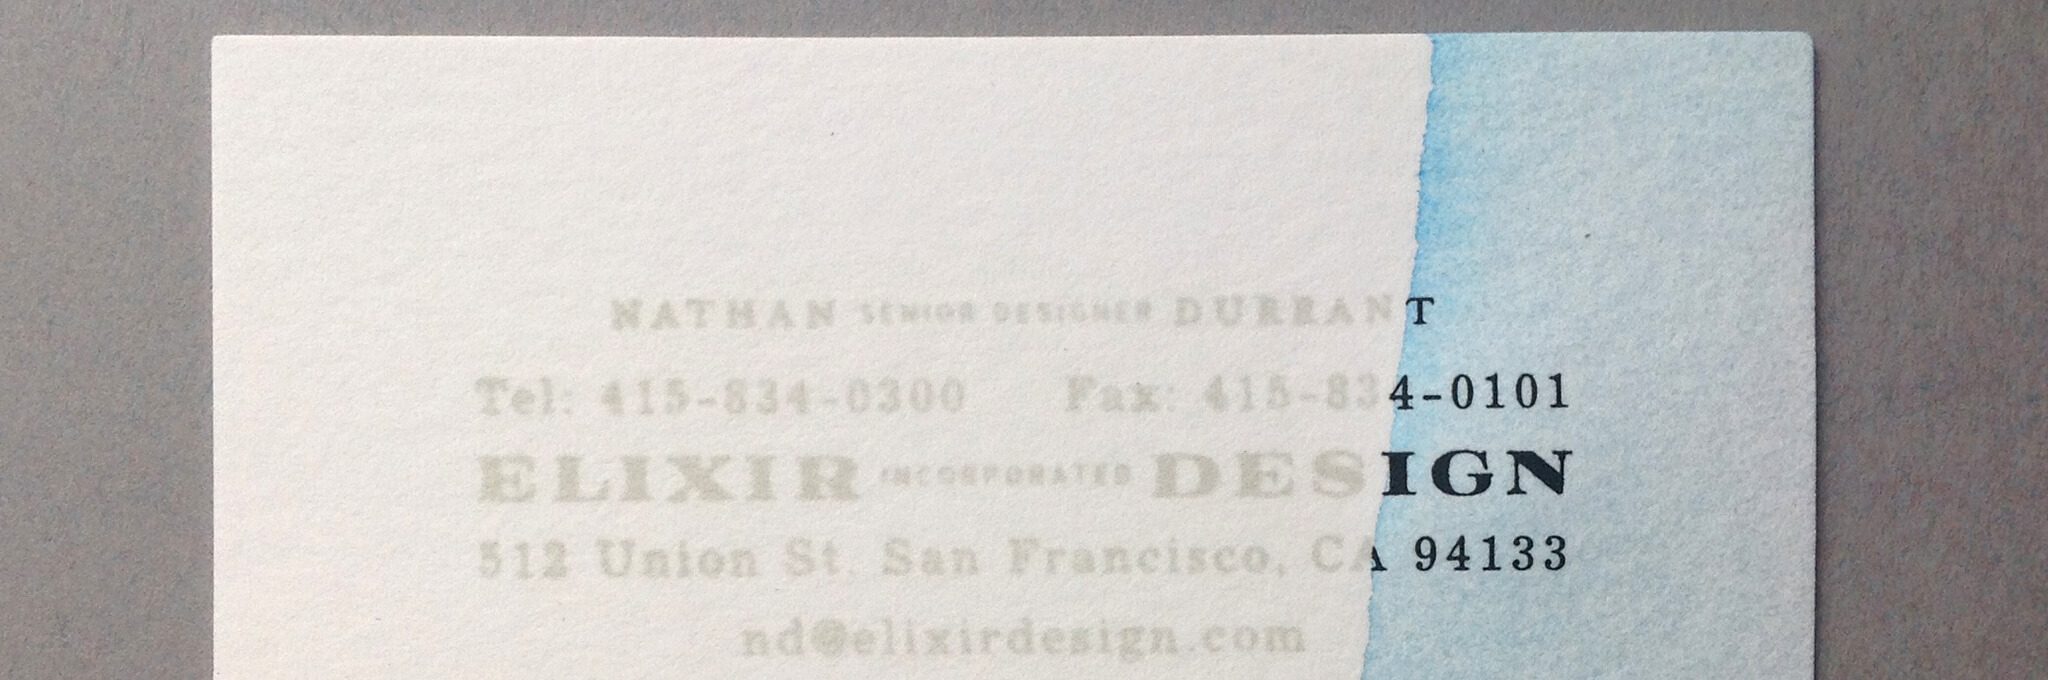 White business card partially dipped in light blue ink on right side